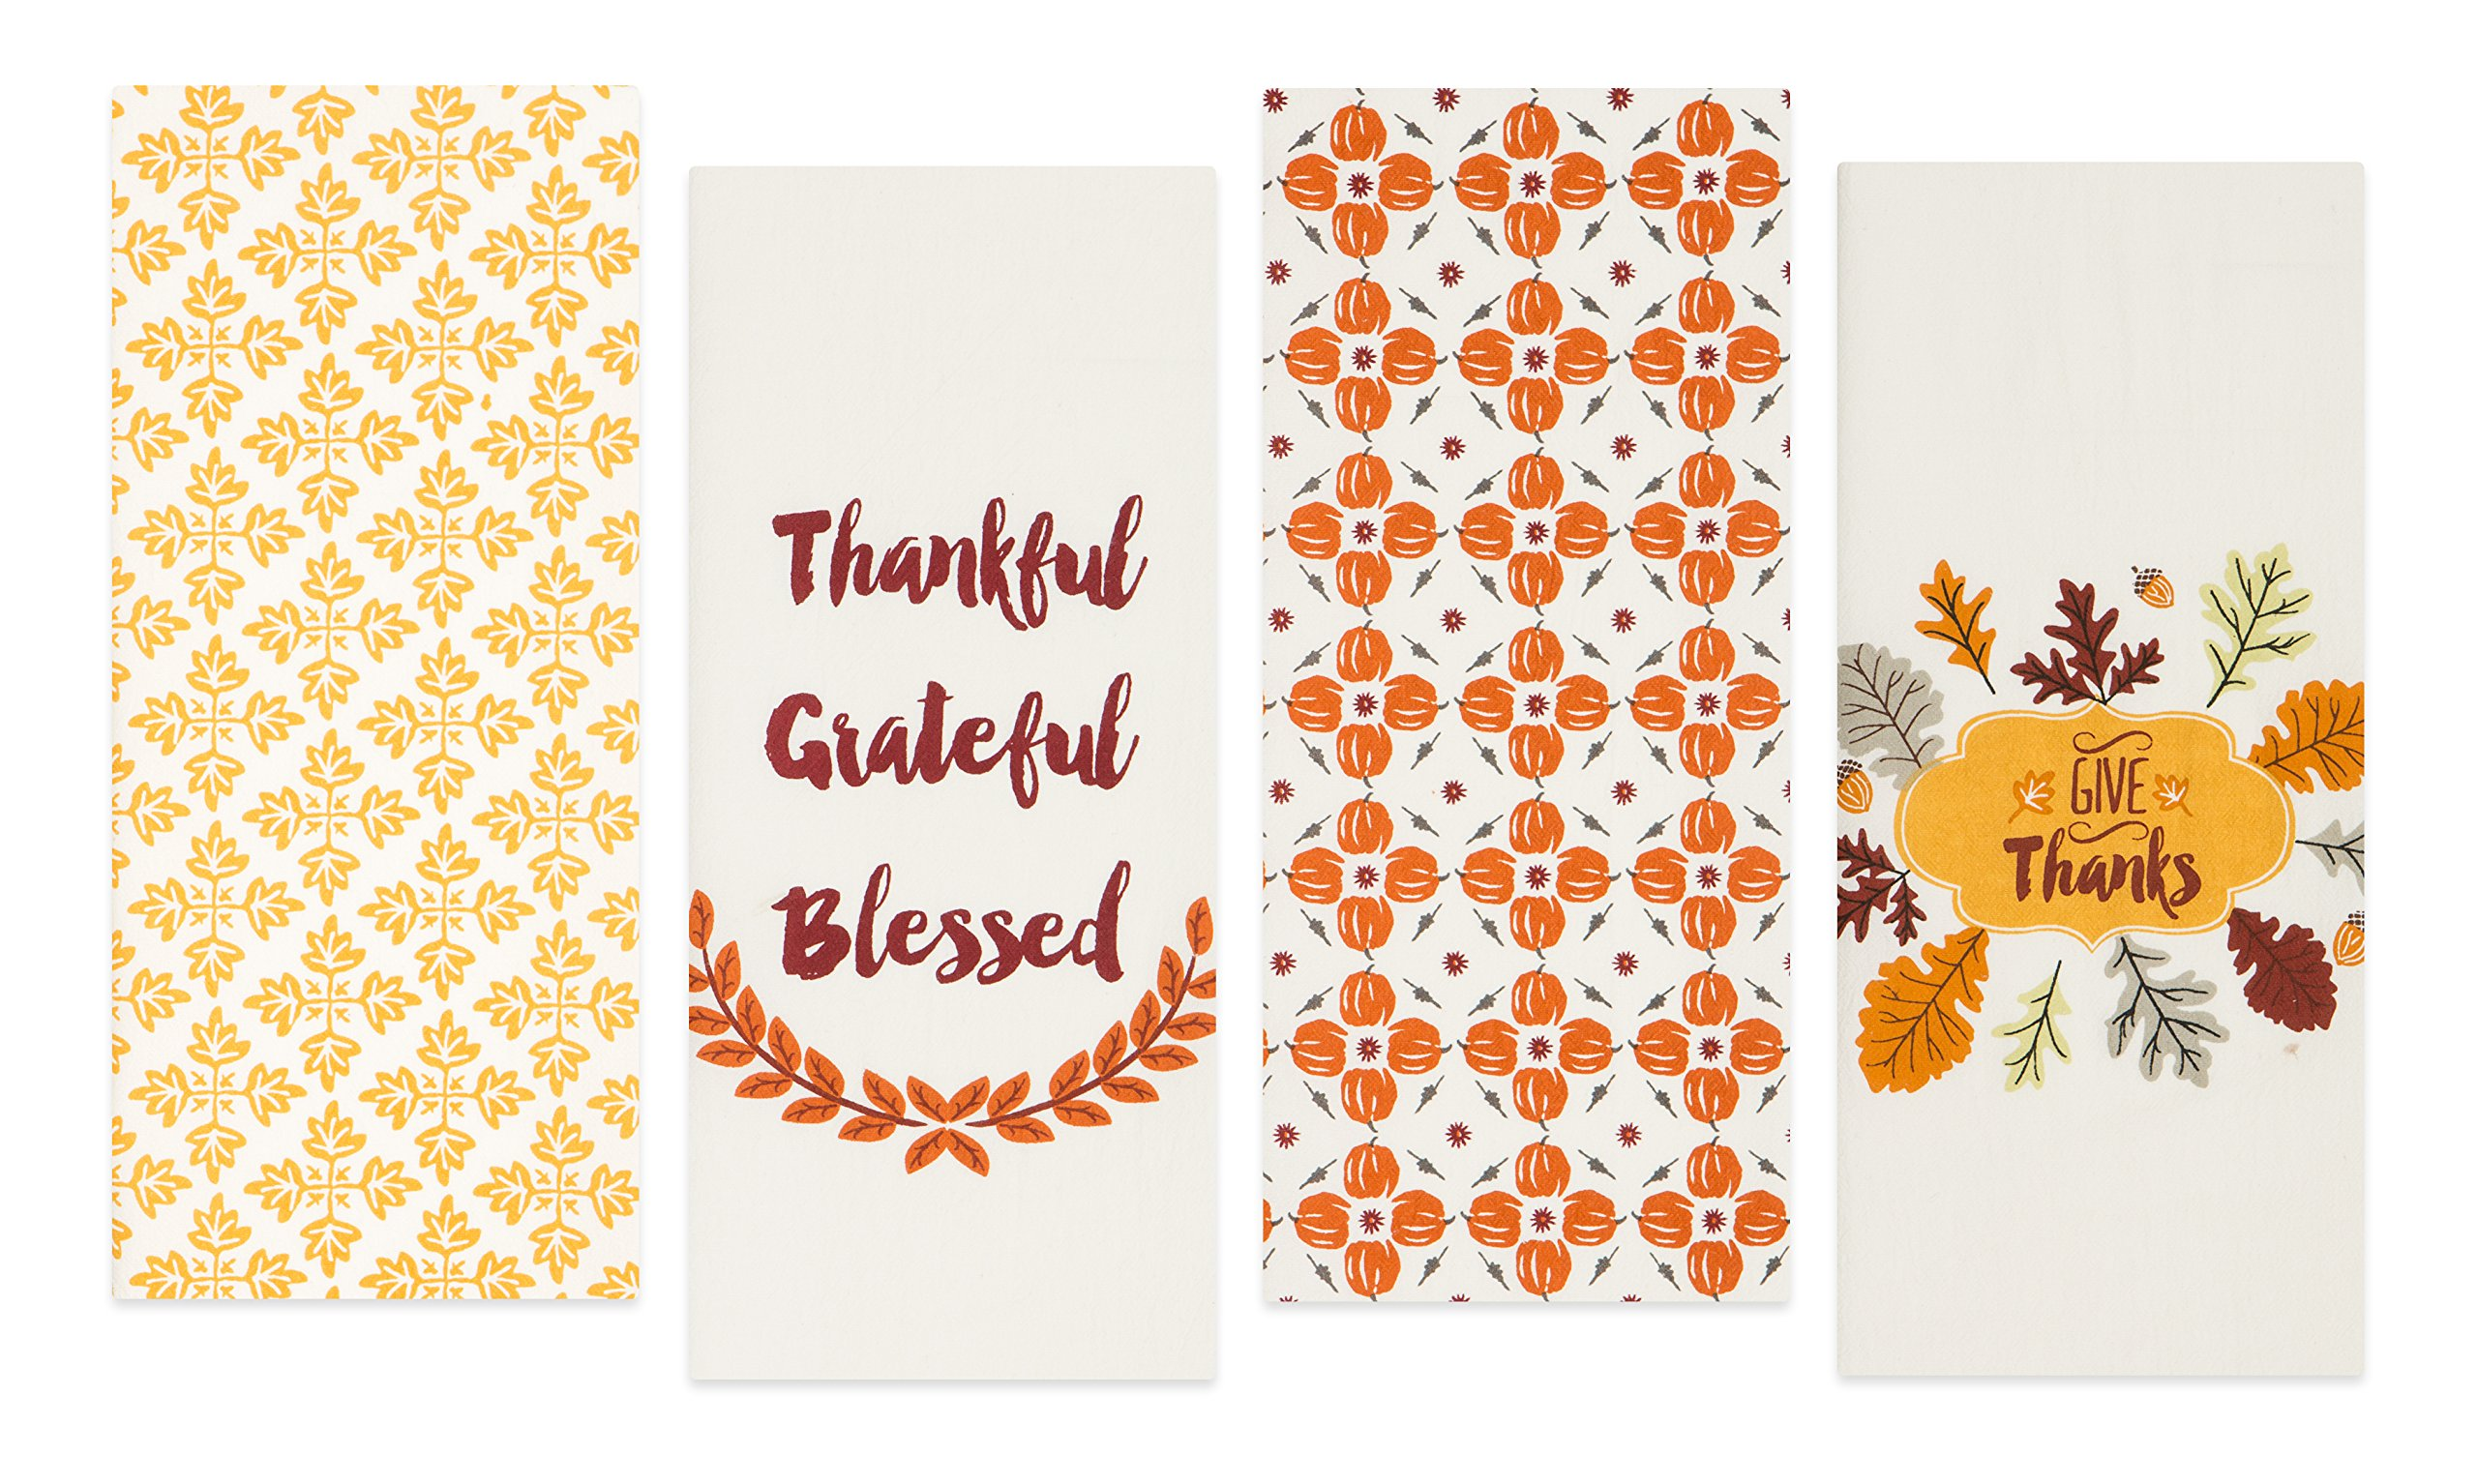 Sticky Toffee Cotton Harvest Flour Sack Kitchen Towels, Pumpkin and Leaves Fall Prints, 4 Pack, 28 in x 29 in